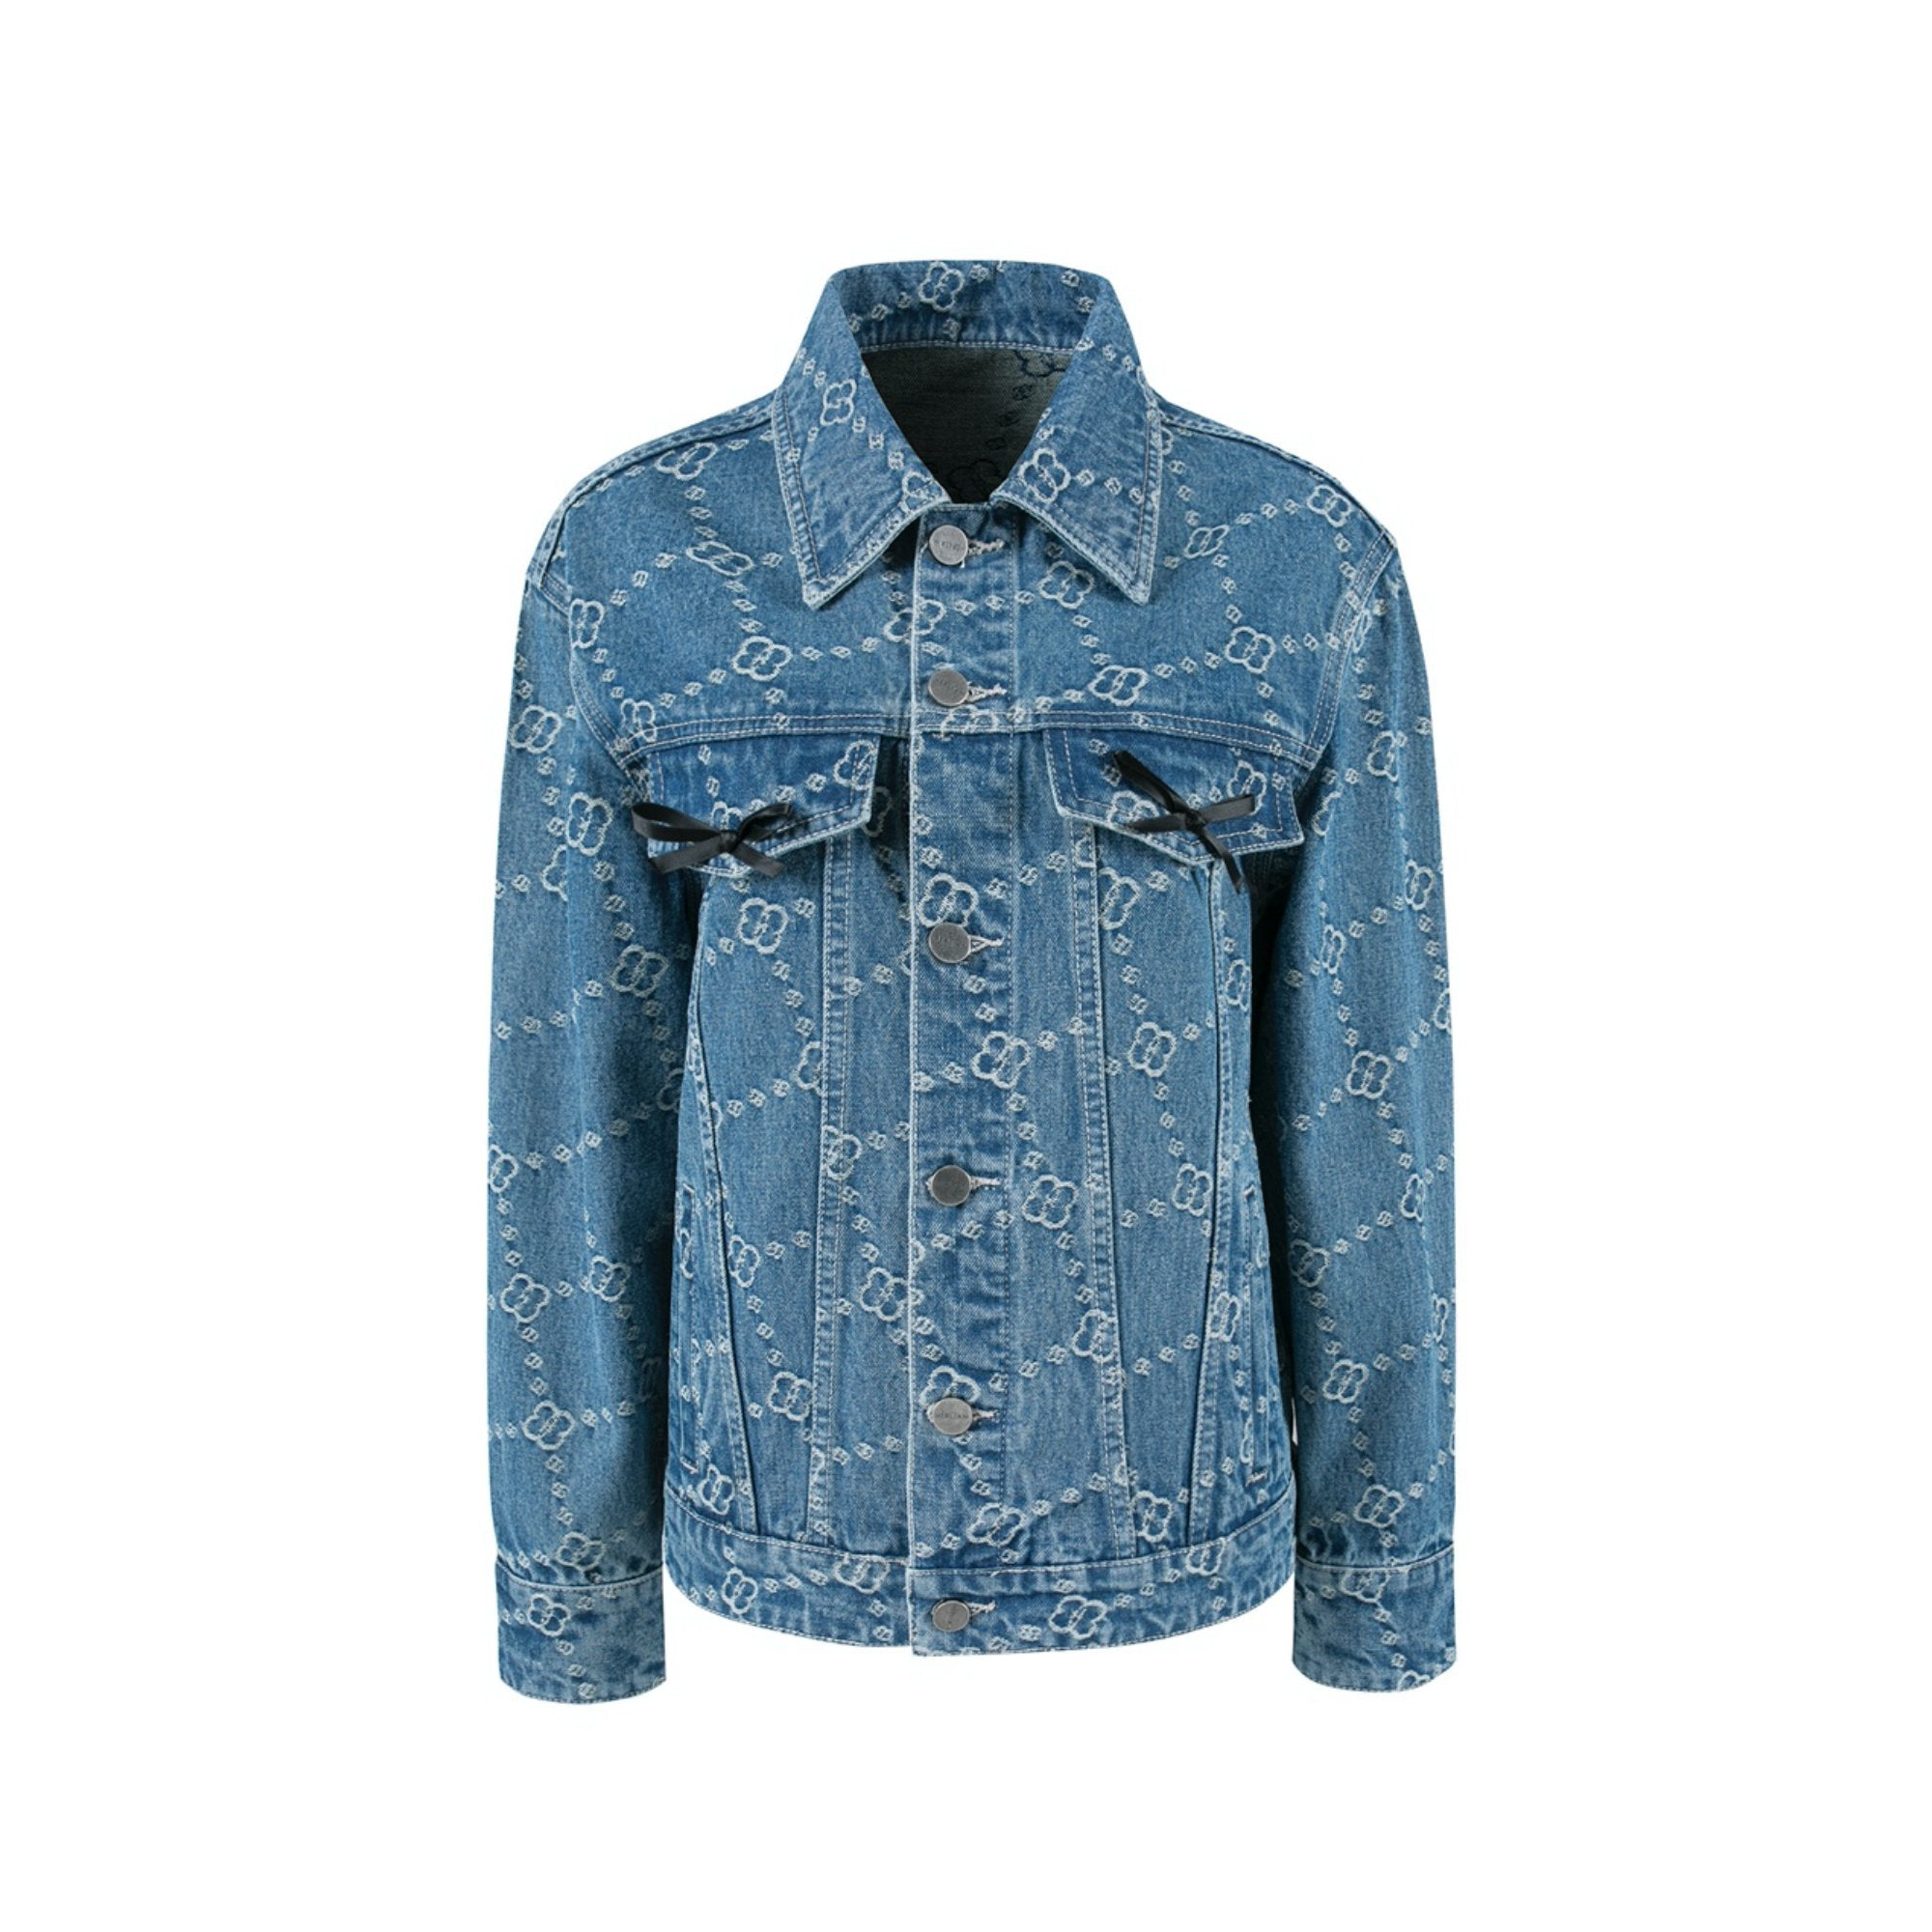 HERLIAN 'Dans La Fleur' Allover Logo Denim Jacket | MADA IN CHINA